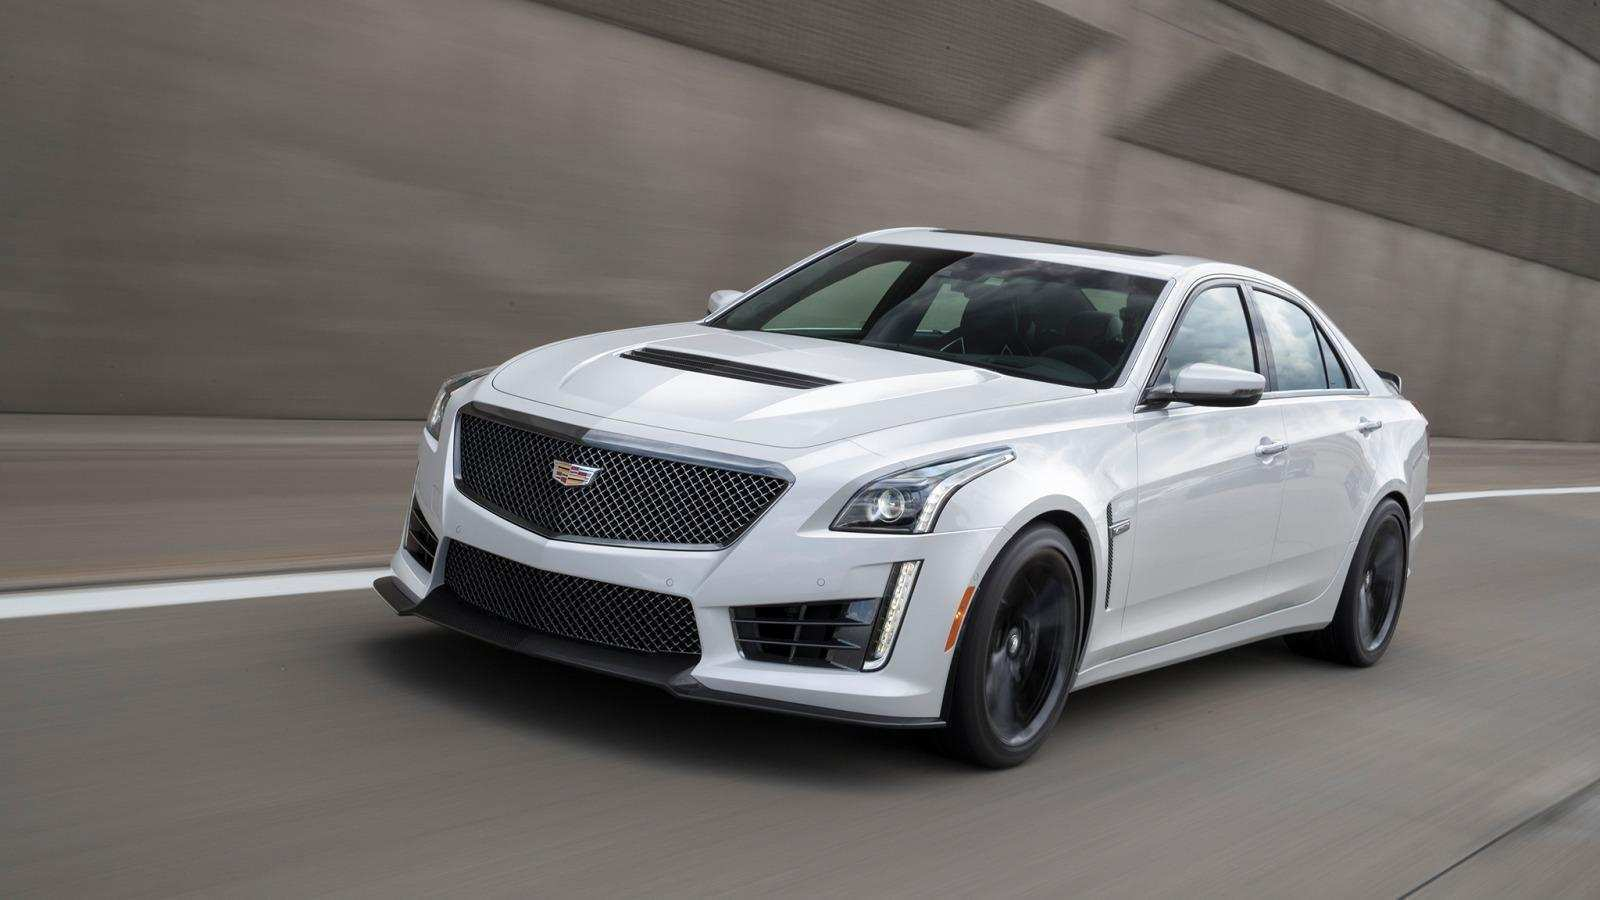 34 The Best 2019 Cadillac Cts V Pricing